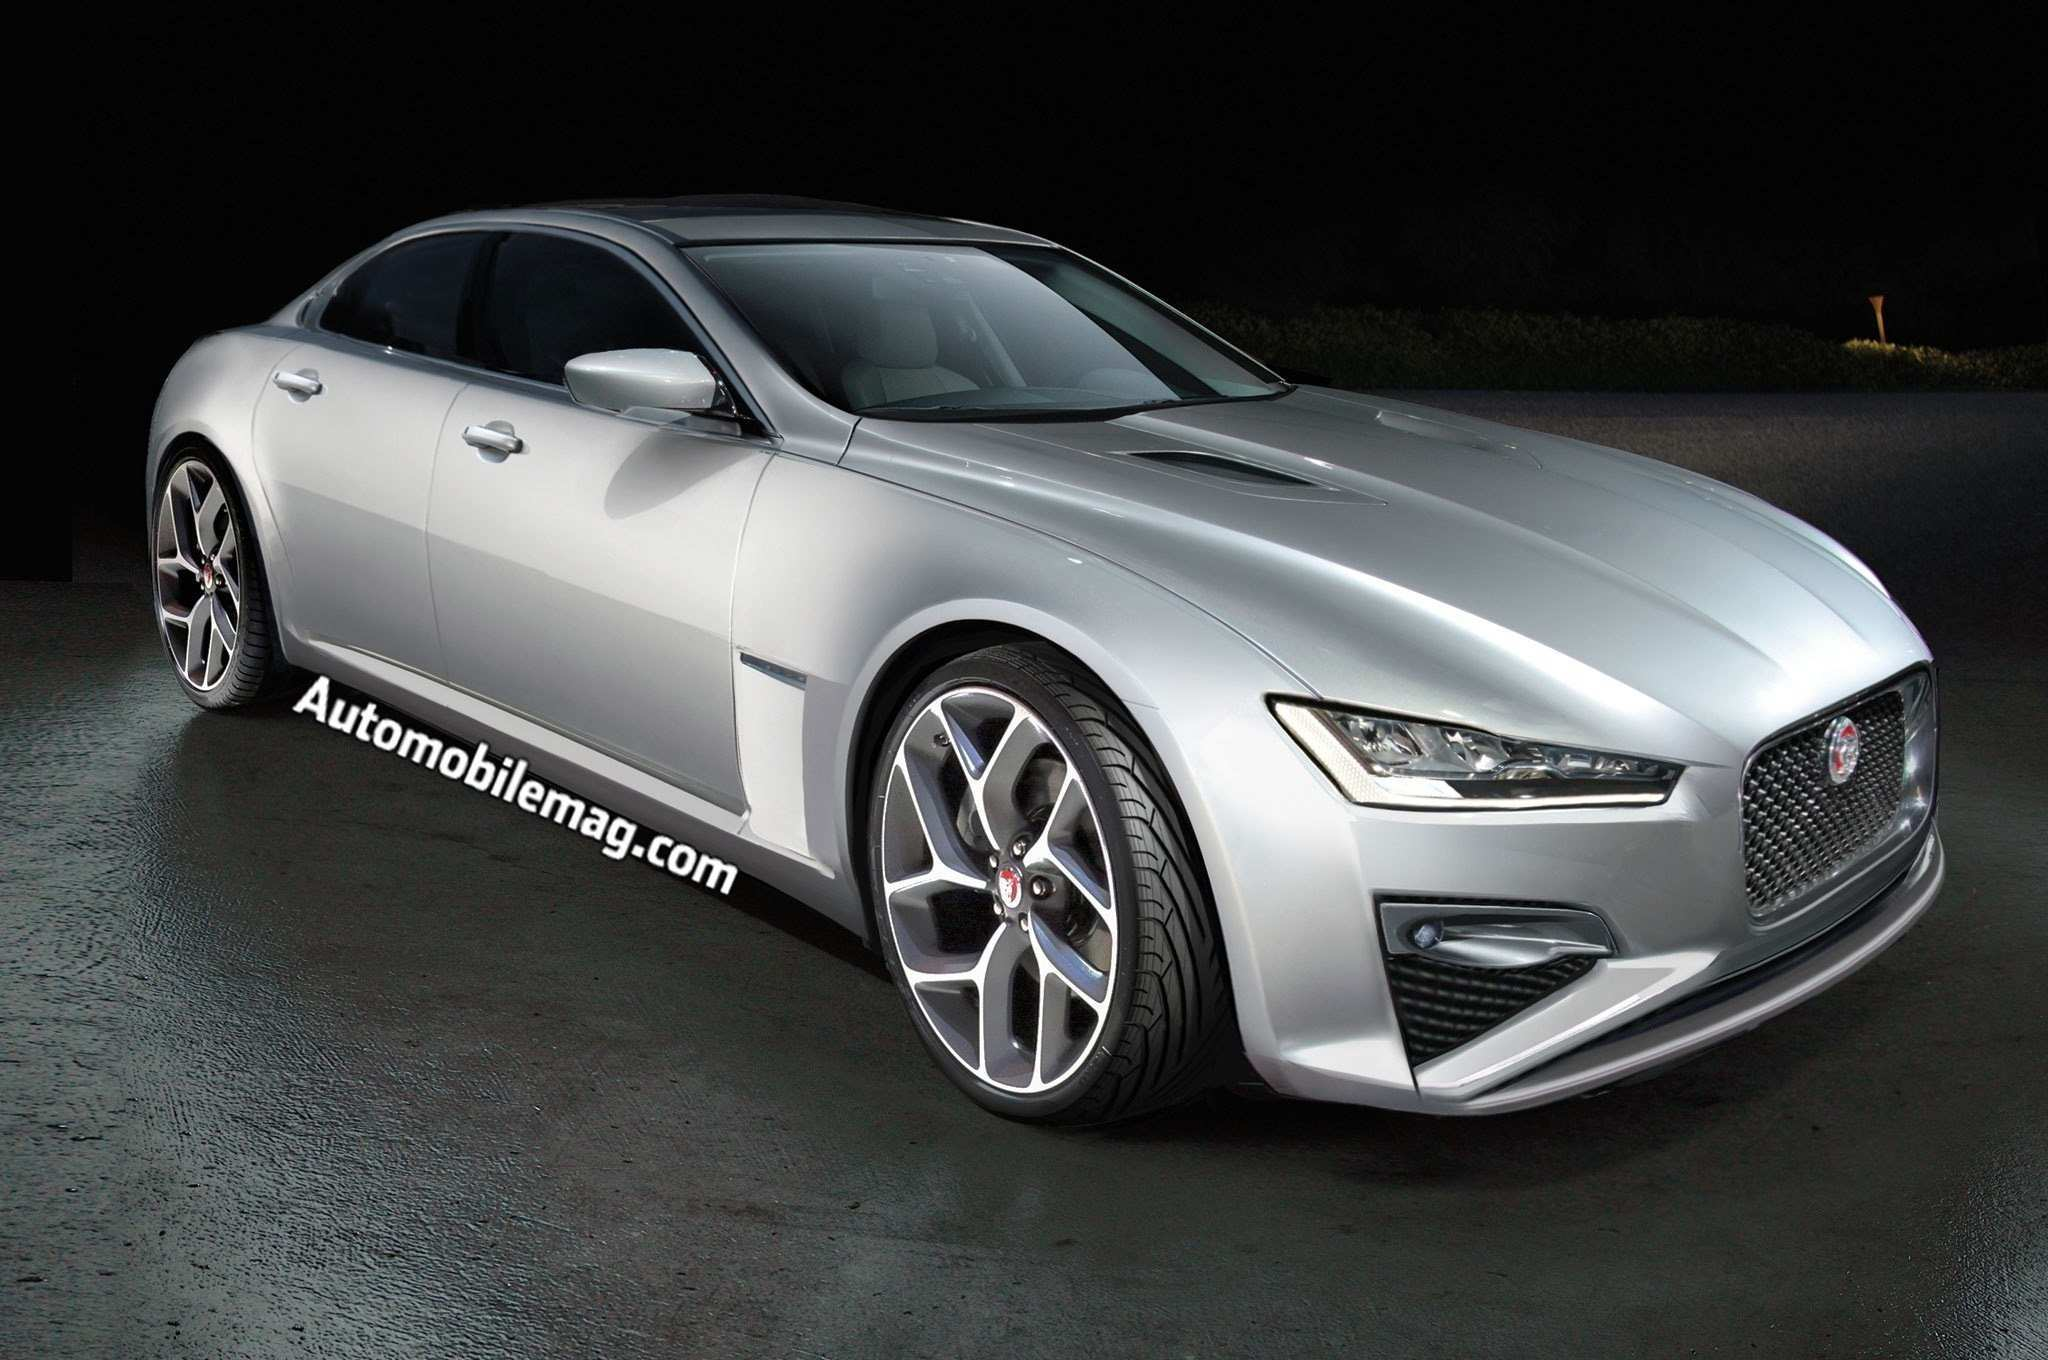 71 All New Jaguar Xe 2020 New Concept Concept with Jaguar Xe 2020 New Concept